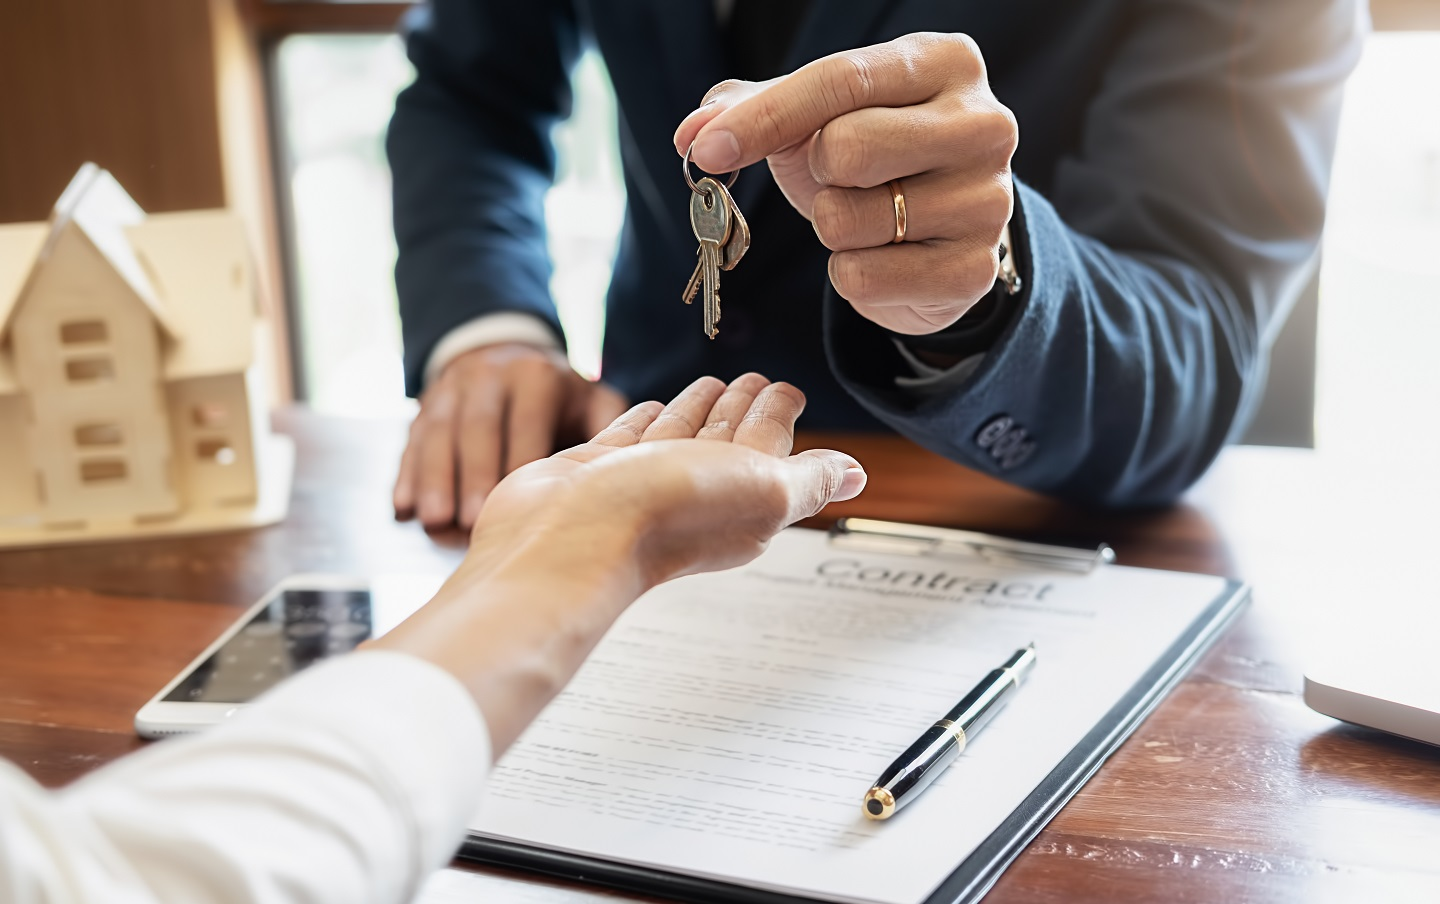 A man is giving keys of a home to a buyer